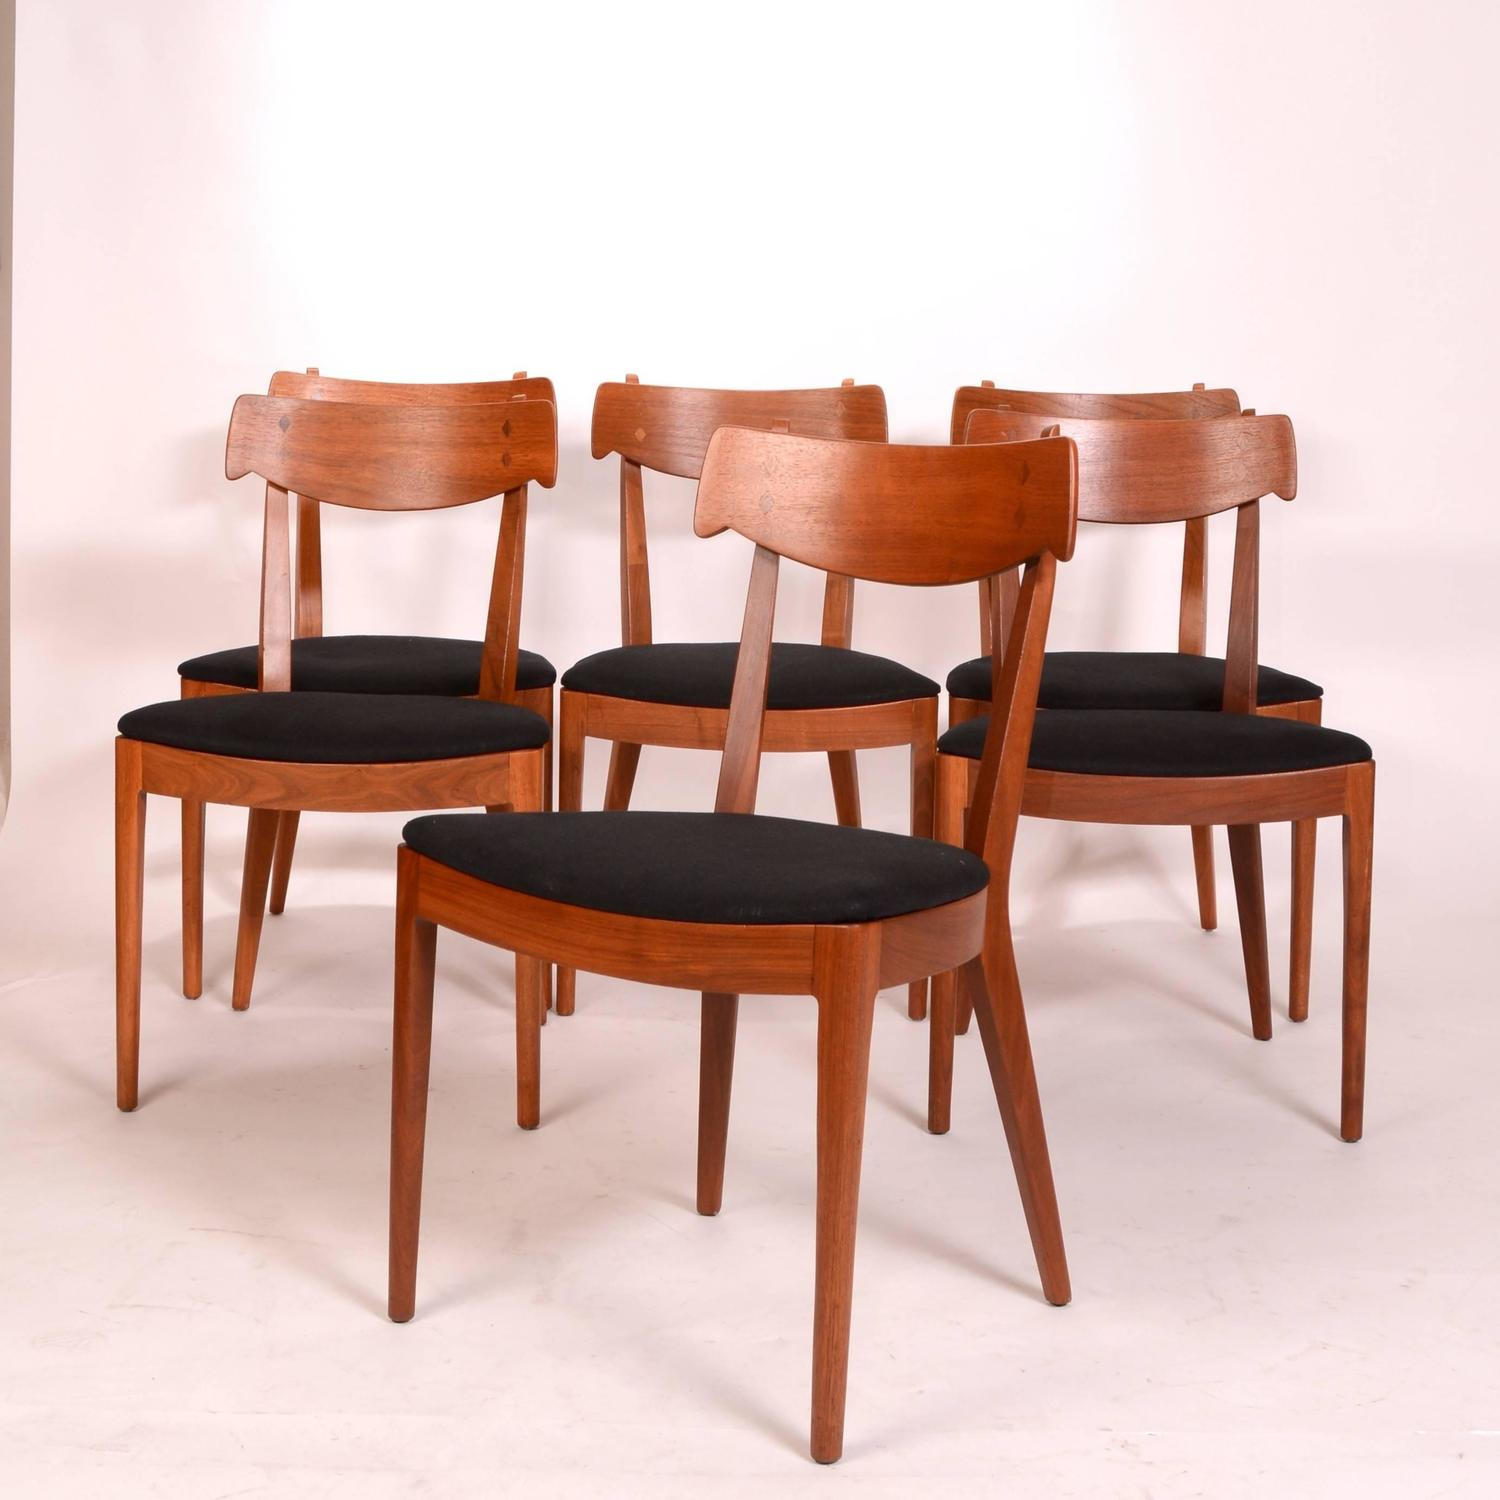 Drexel Dining Room Furniture Set Of Eight Chairs By  : DSC6204z from www.artofarchitect.com size 1500 x 1500 jpeg 114kB